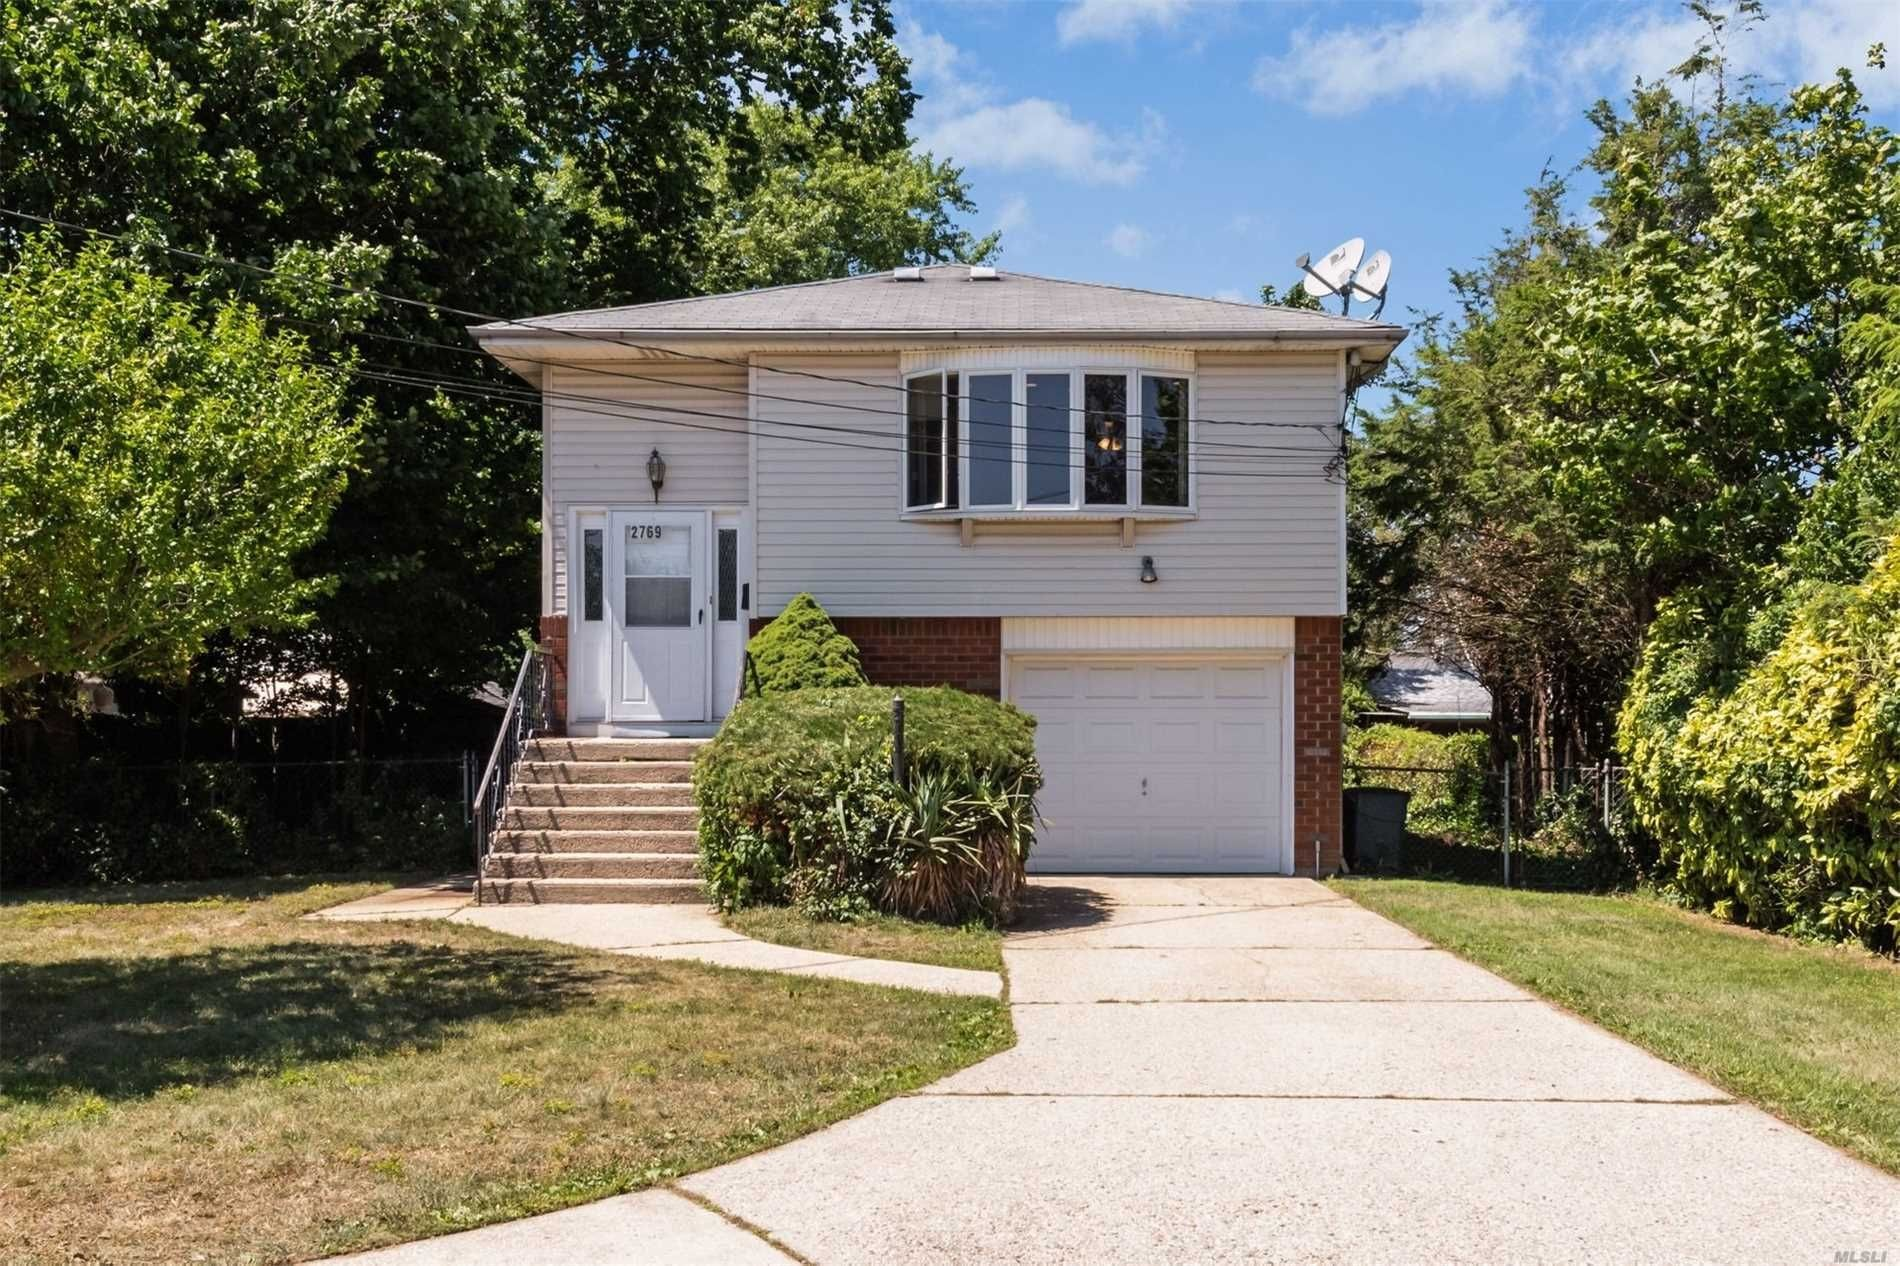 Houses For Sale Bellmore Ny